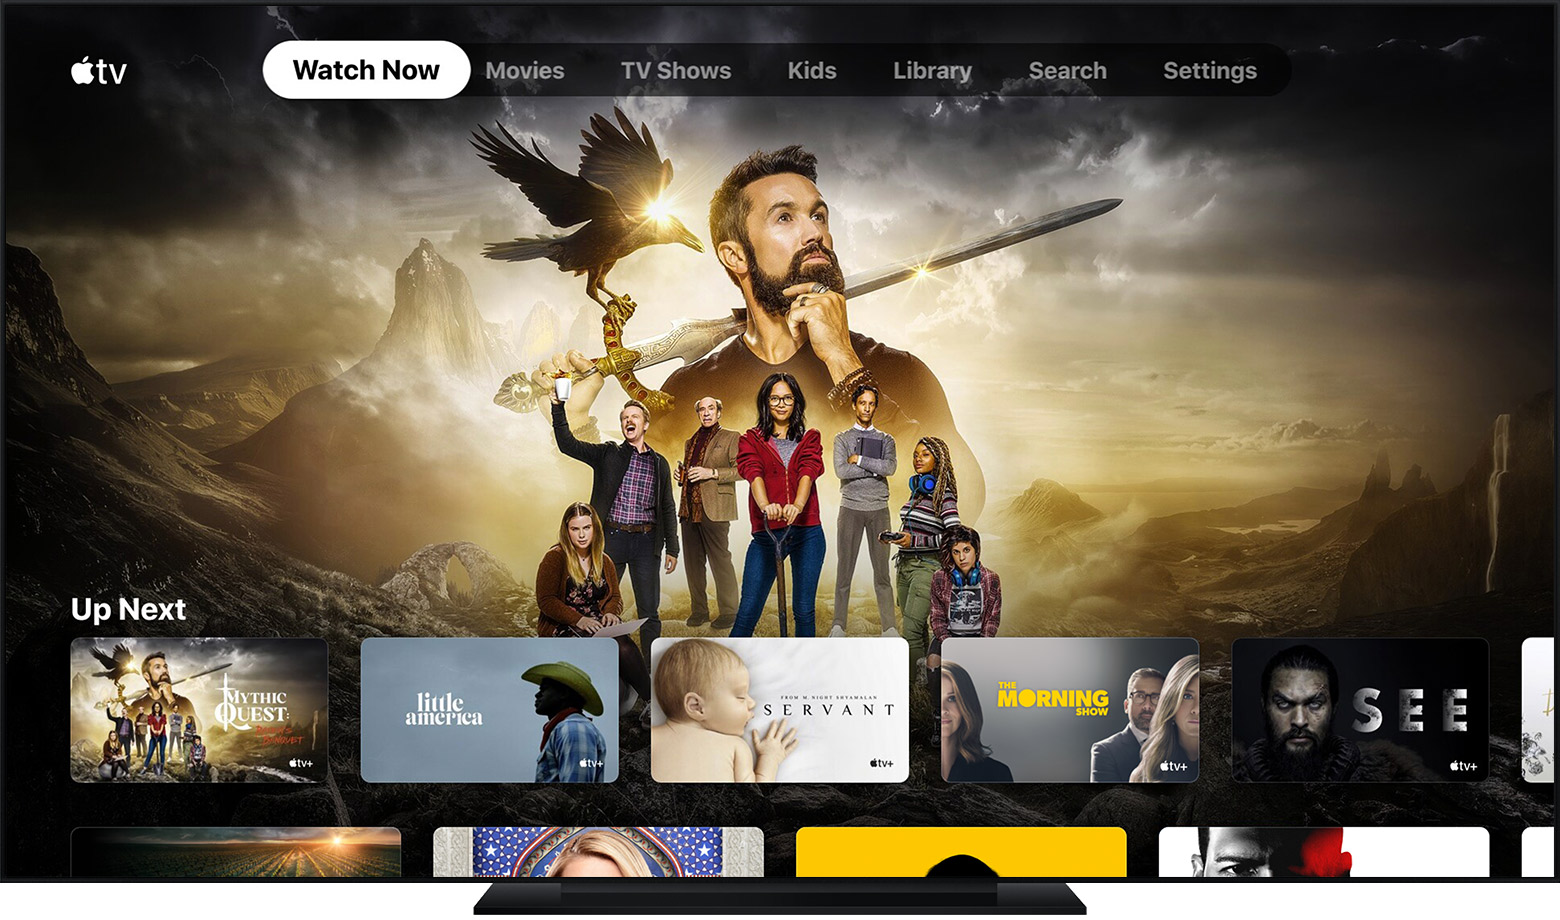 Get the Apple TV app on your smart TV or streaming device - Apple Support